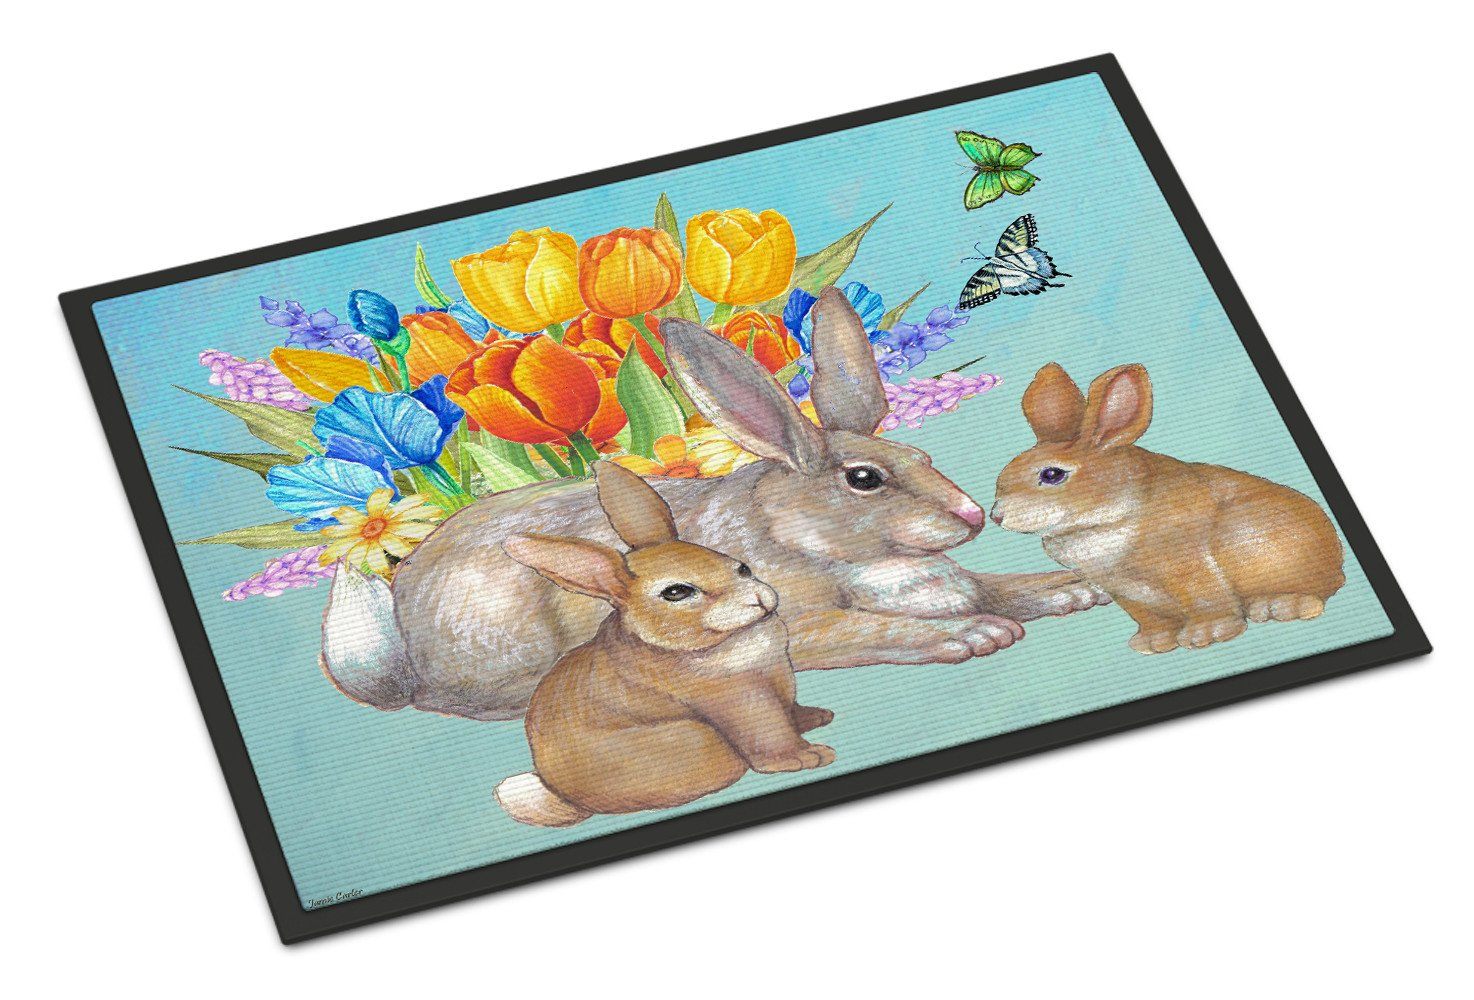 Bunny Family Easter Rabbit Indoor or Outdoor Mat 18x27 PJC1065MAT - the-store.com